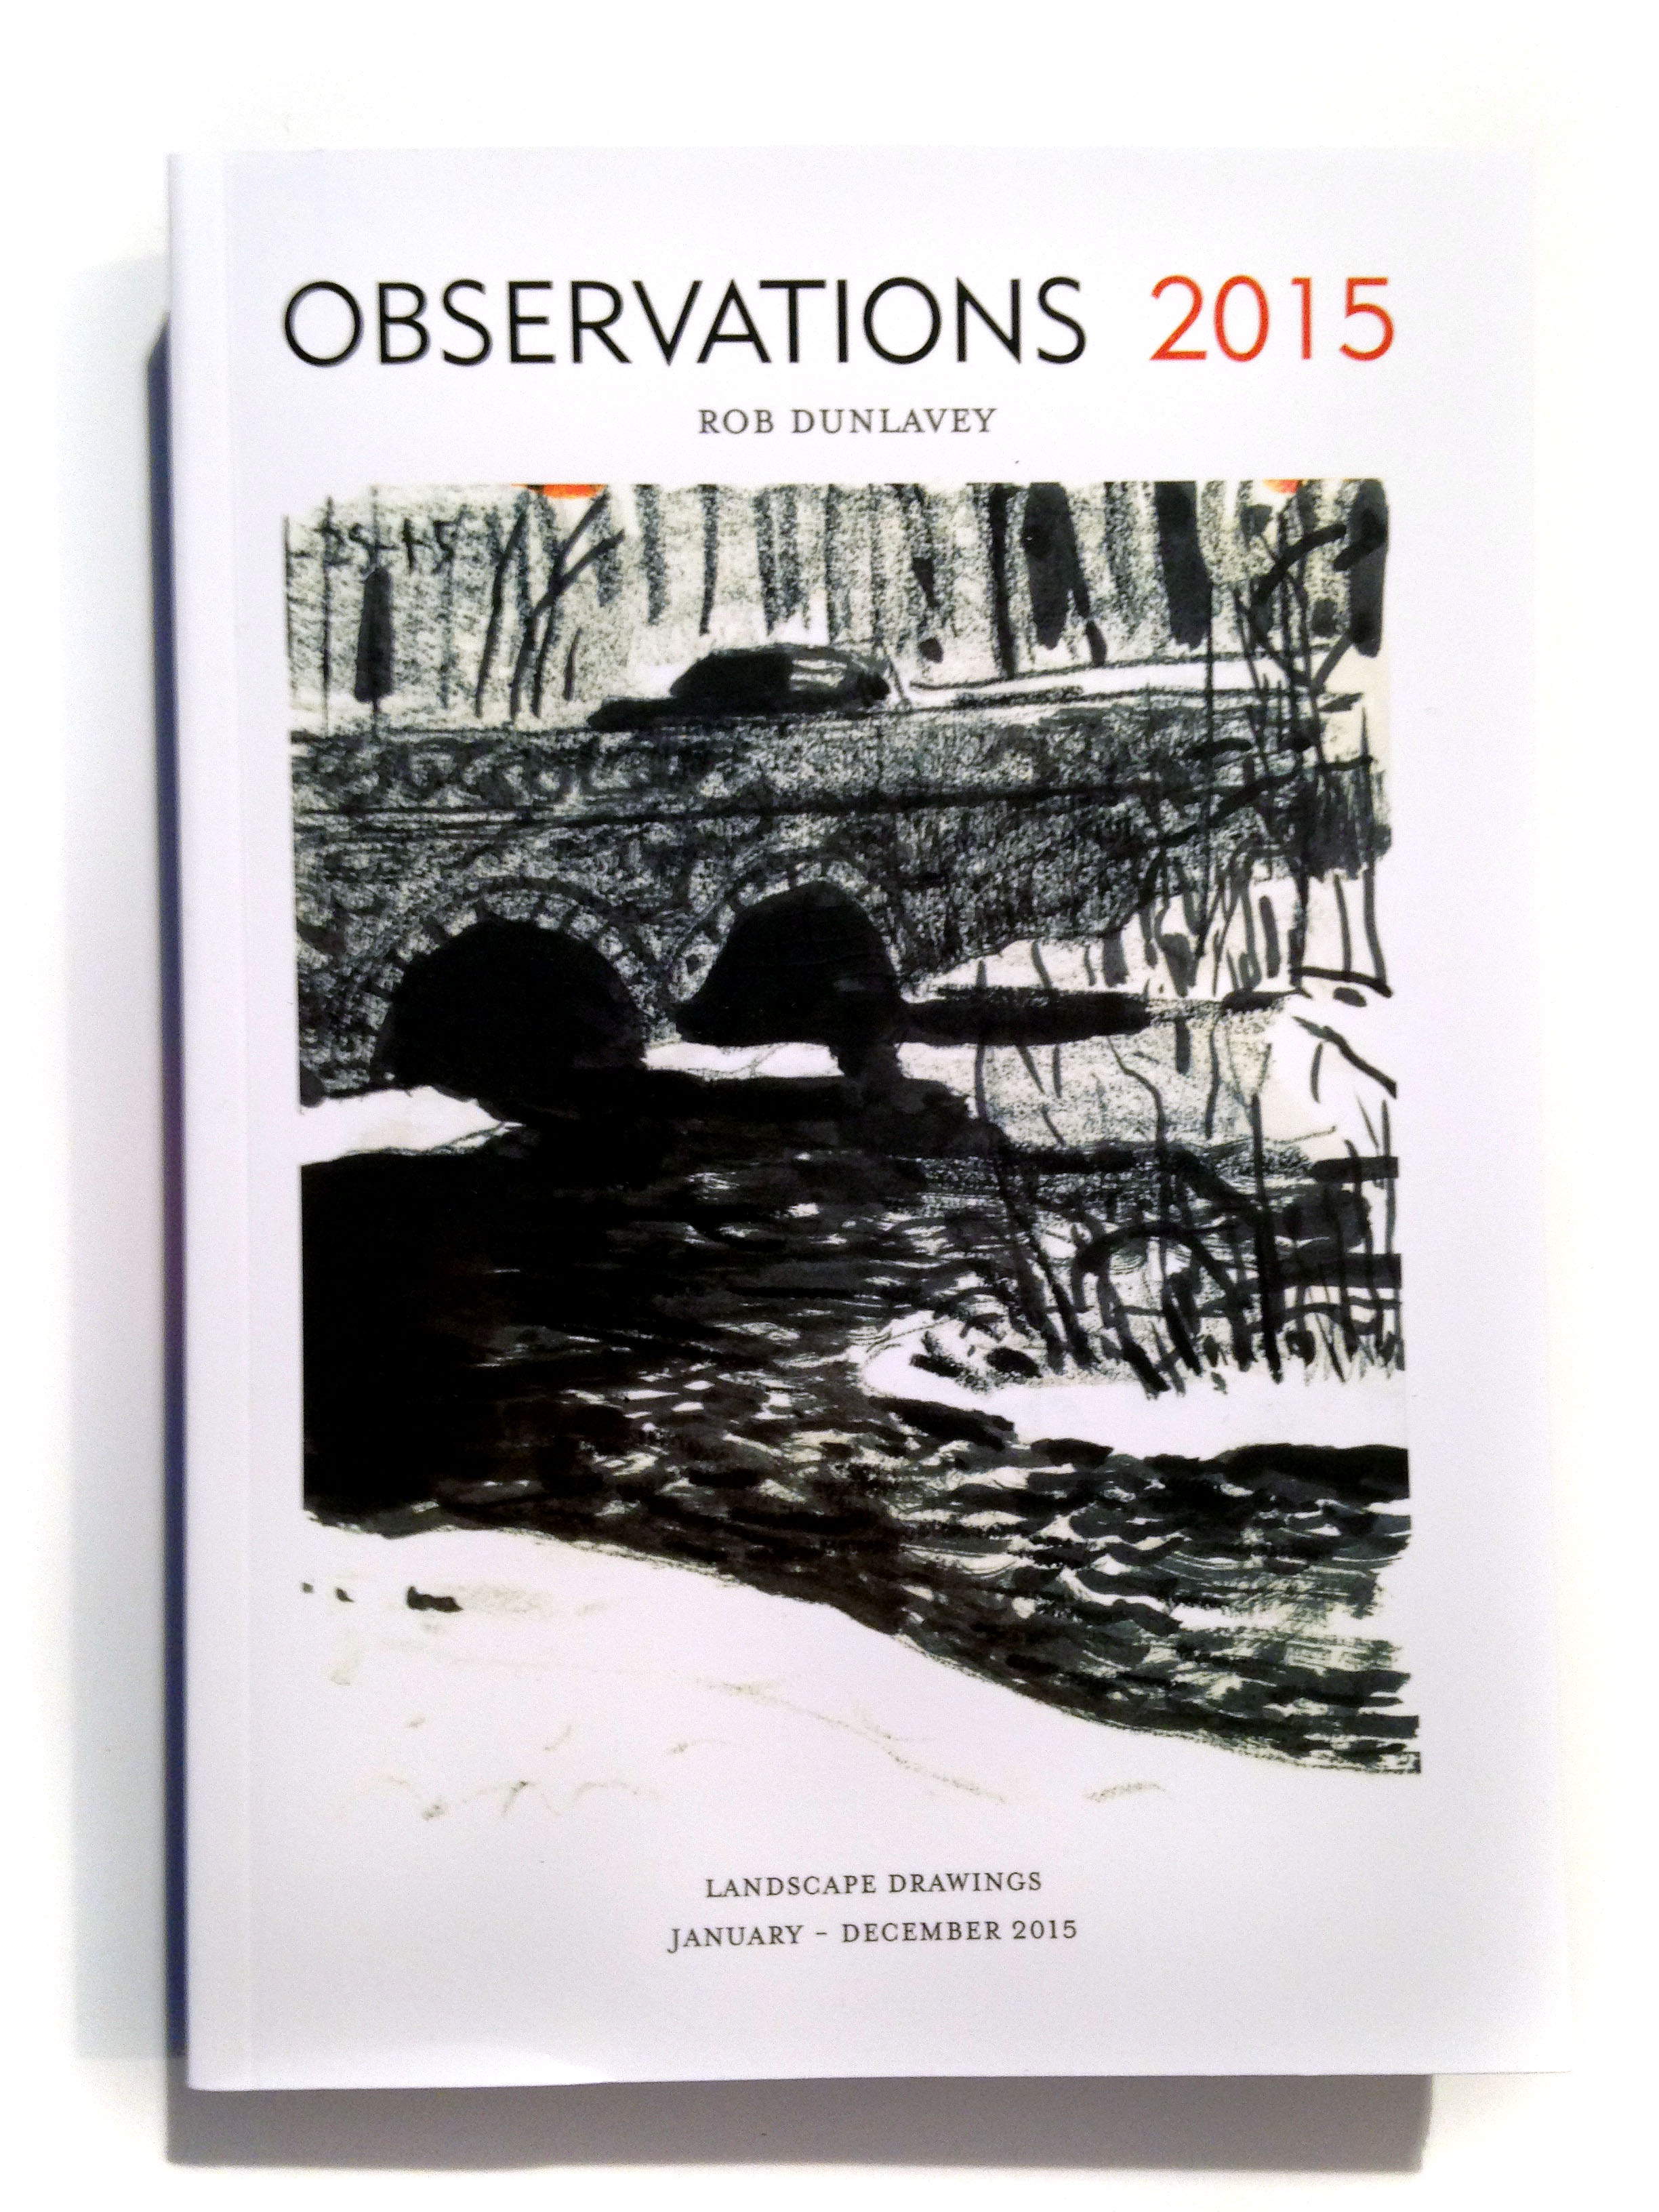 OBSERVATIONS 2015